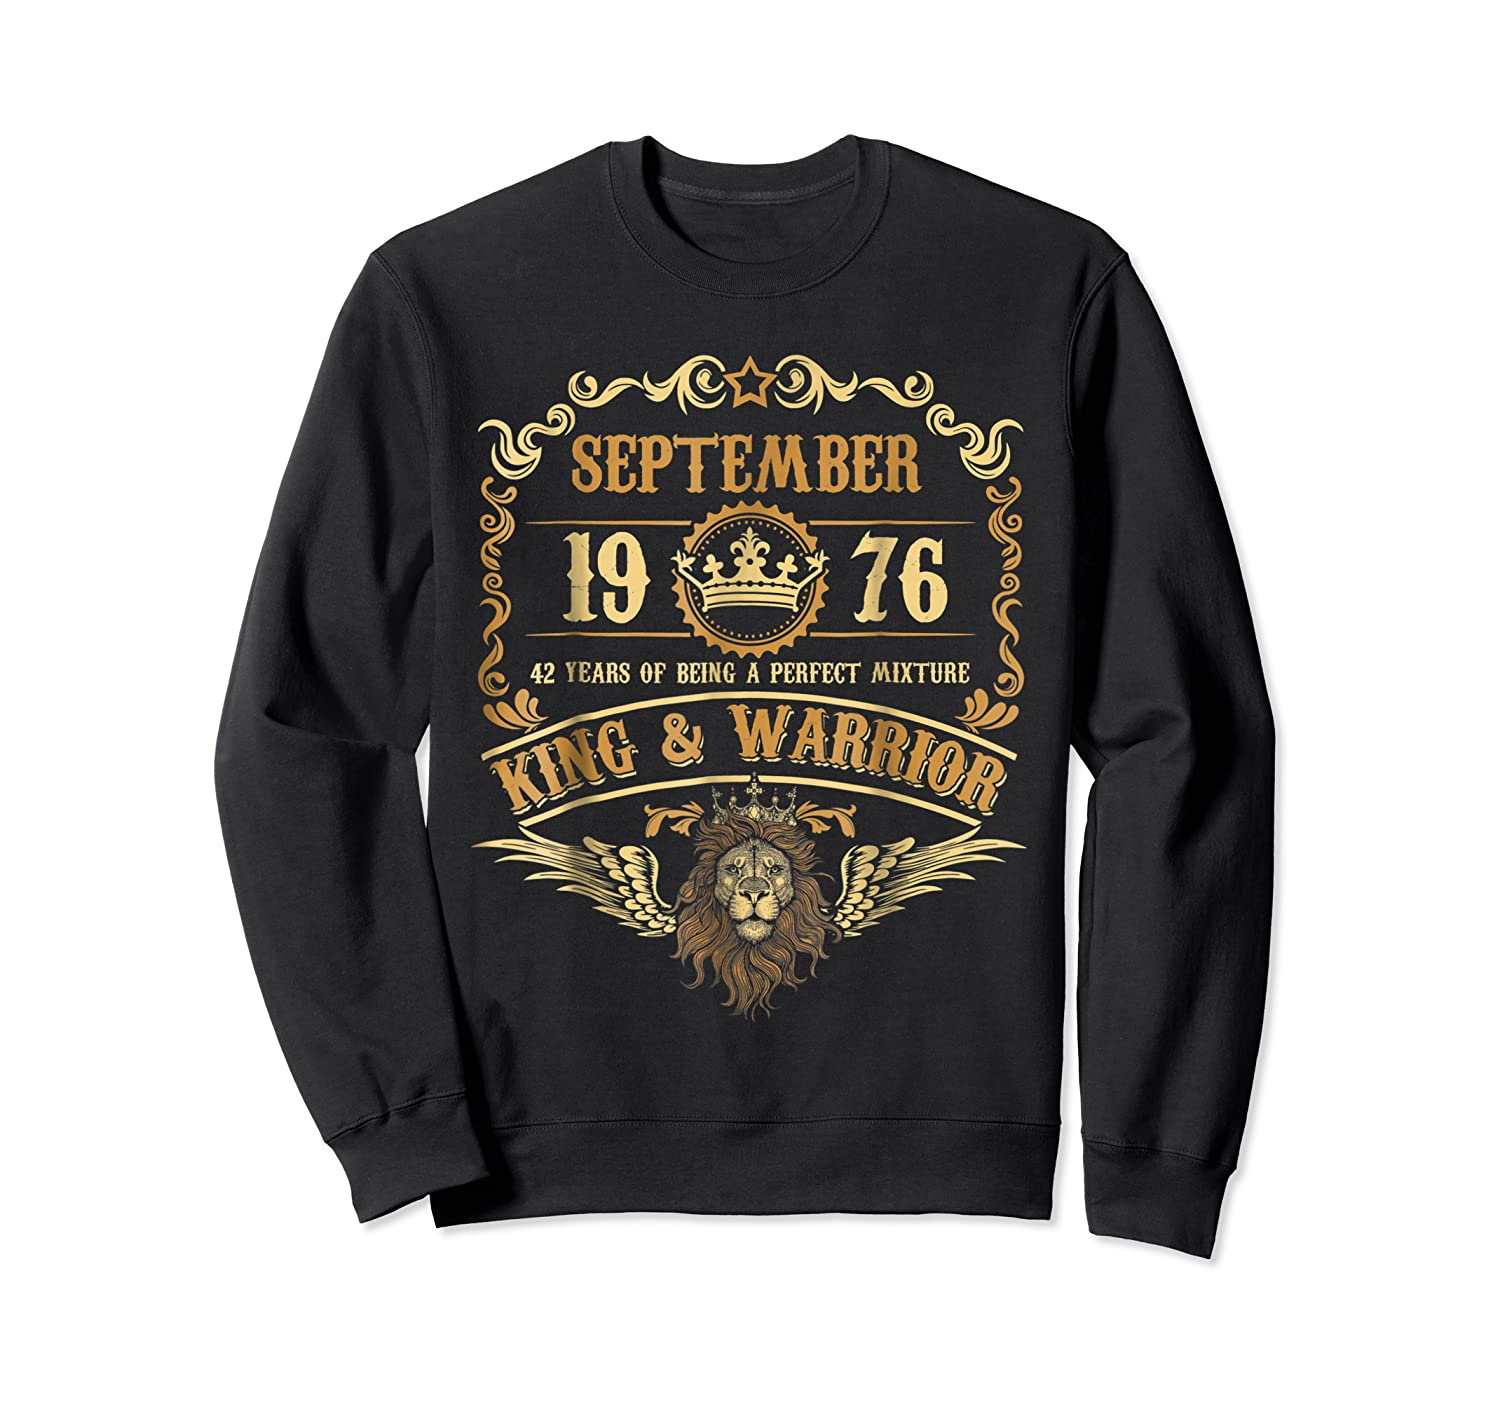 Sept 1976 42 Years Of Being A Mixture King Warrior Shirts Crewneck Sweater